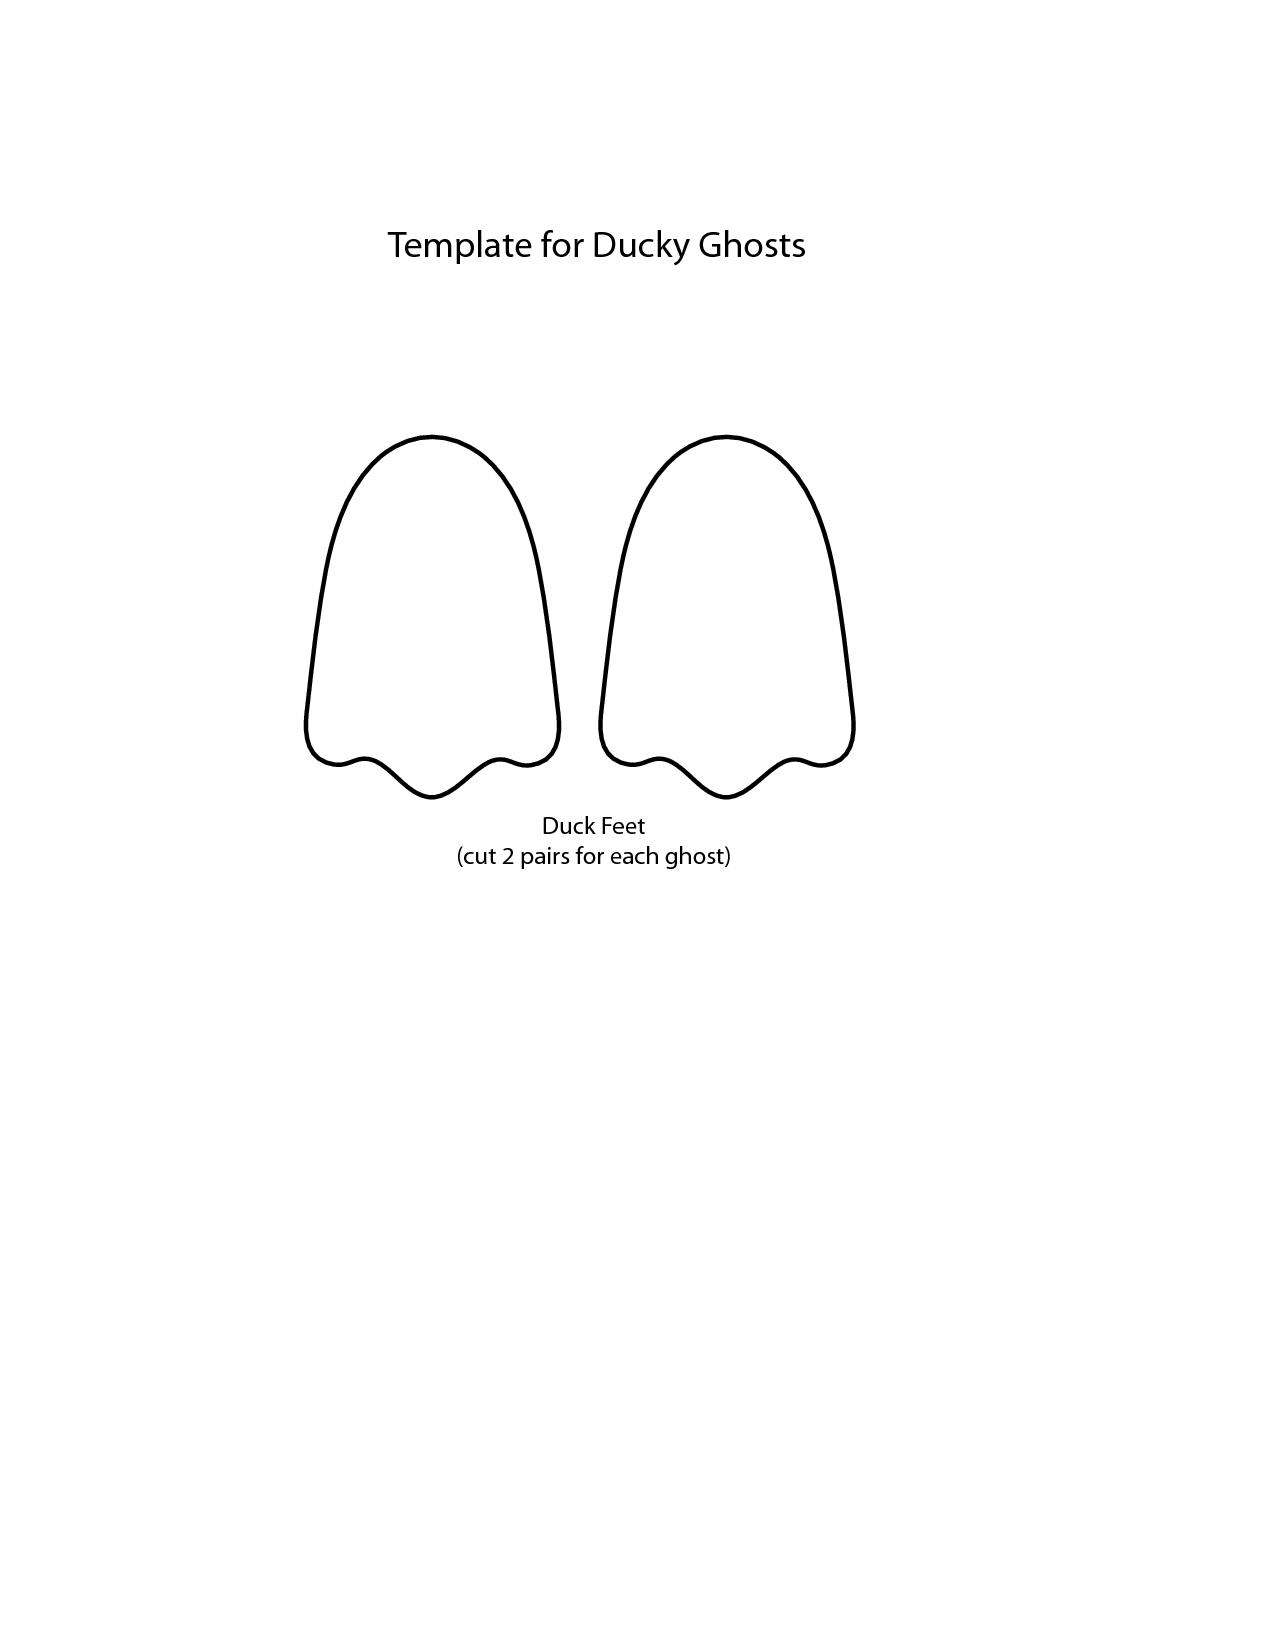 Duck Bill Template Feet